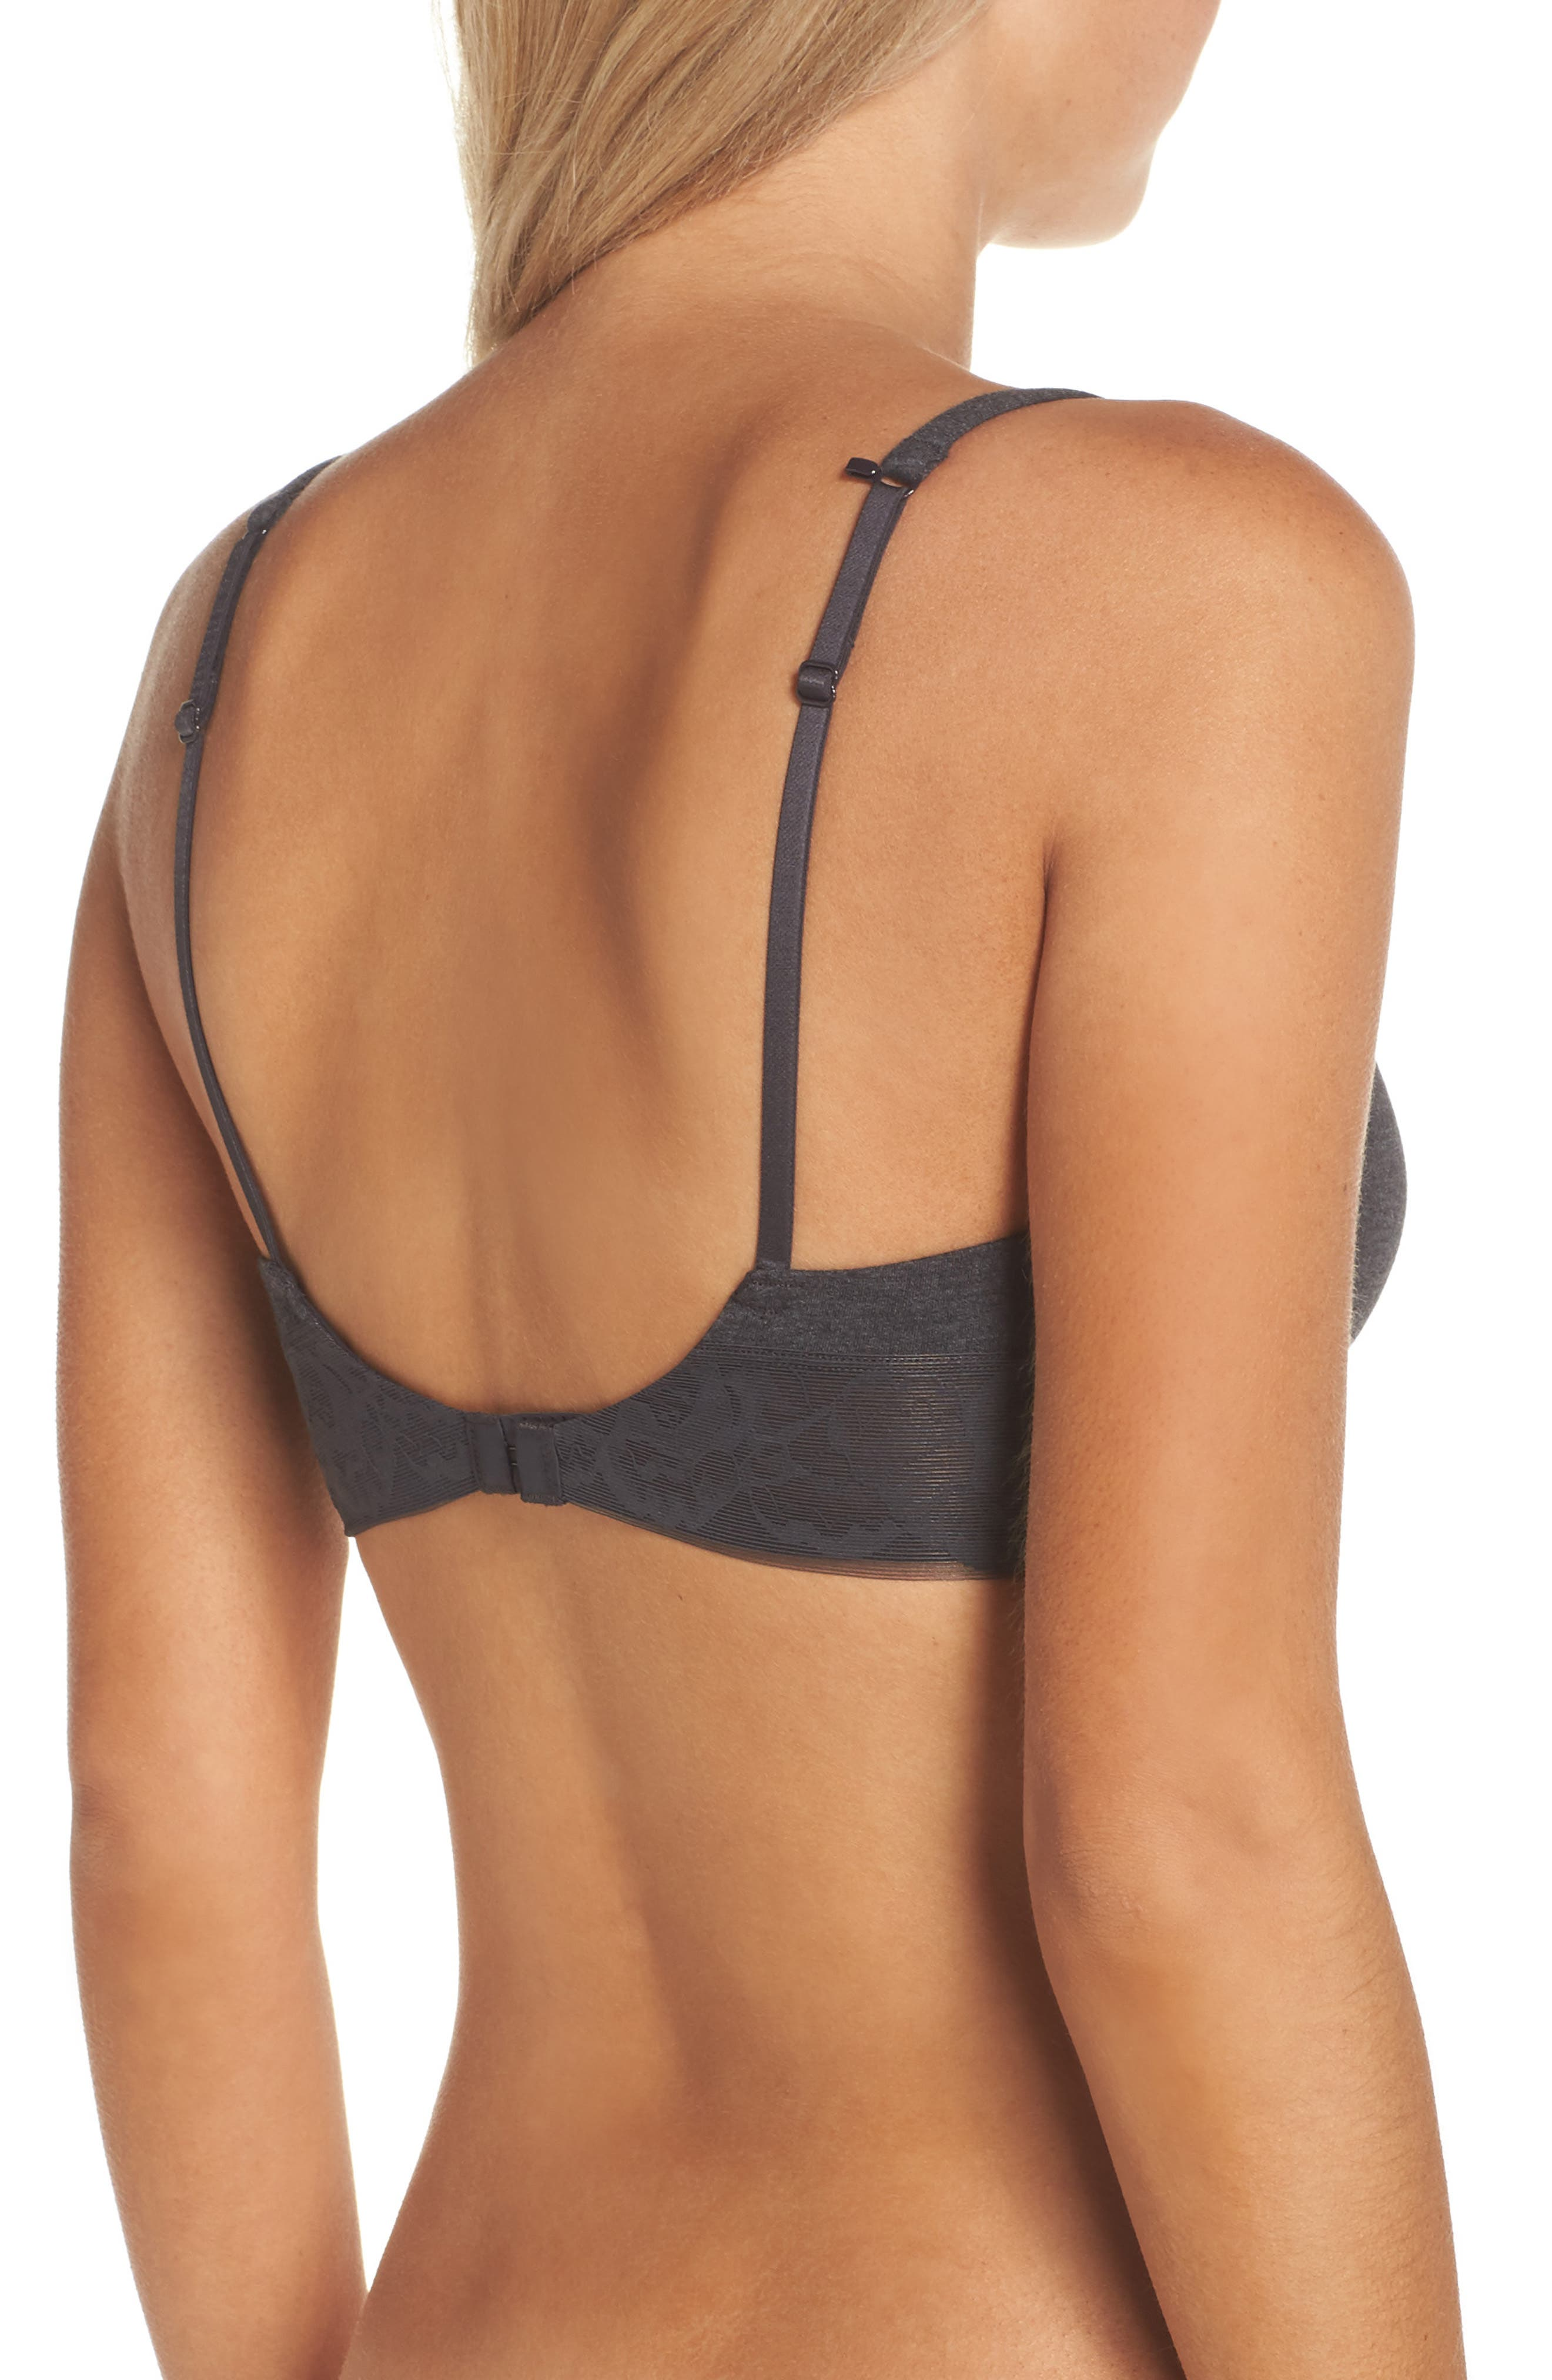 Alternate Image 2  - On Gossamer Wireless Contour Bra